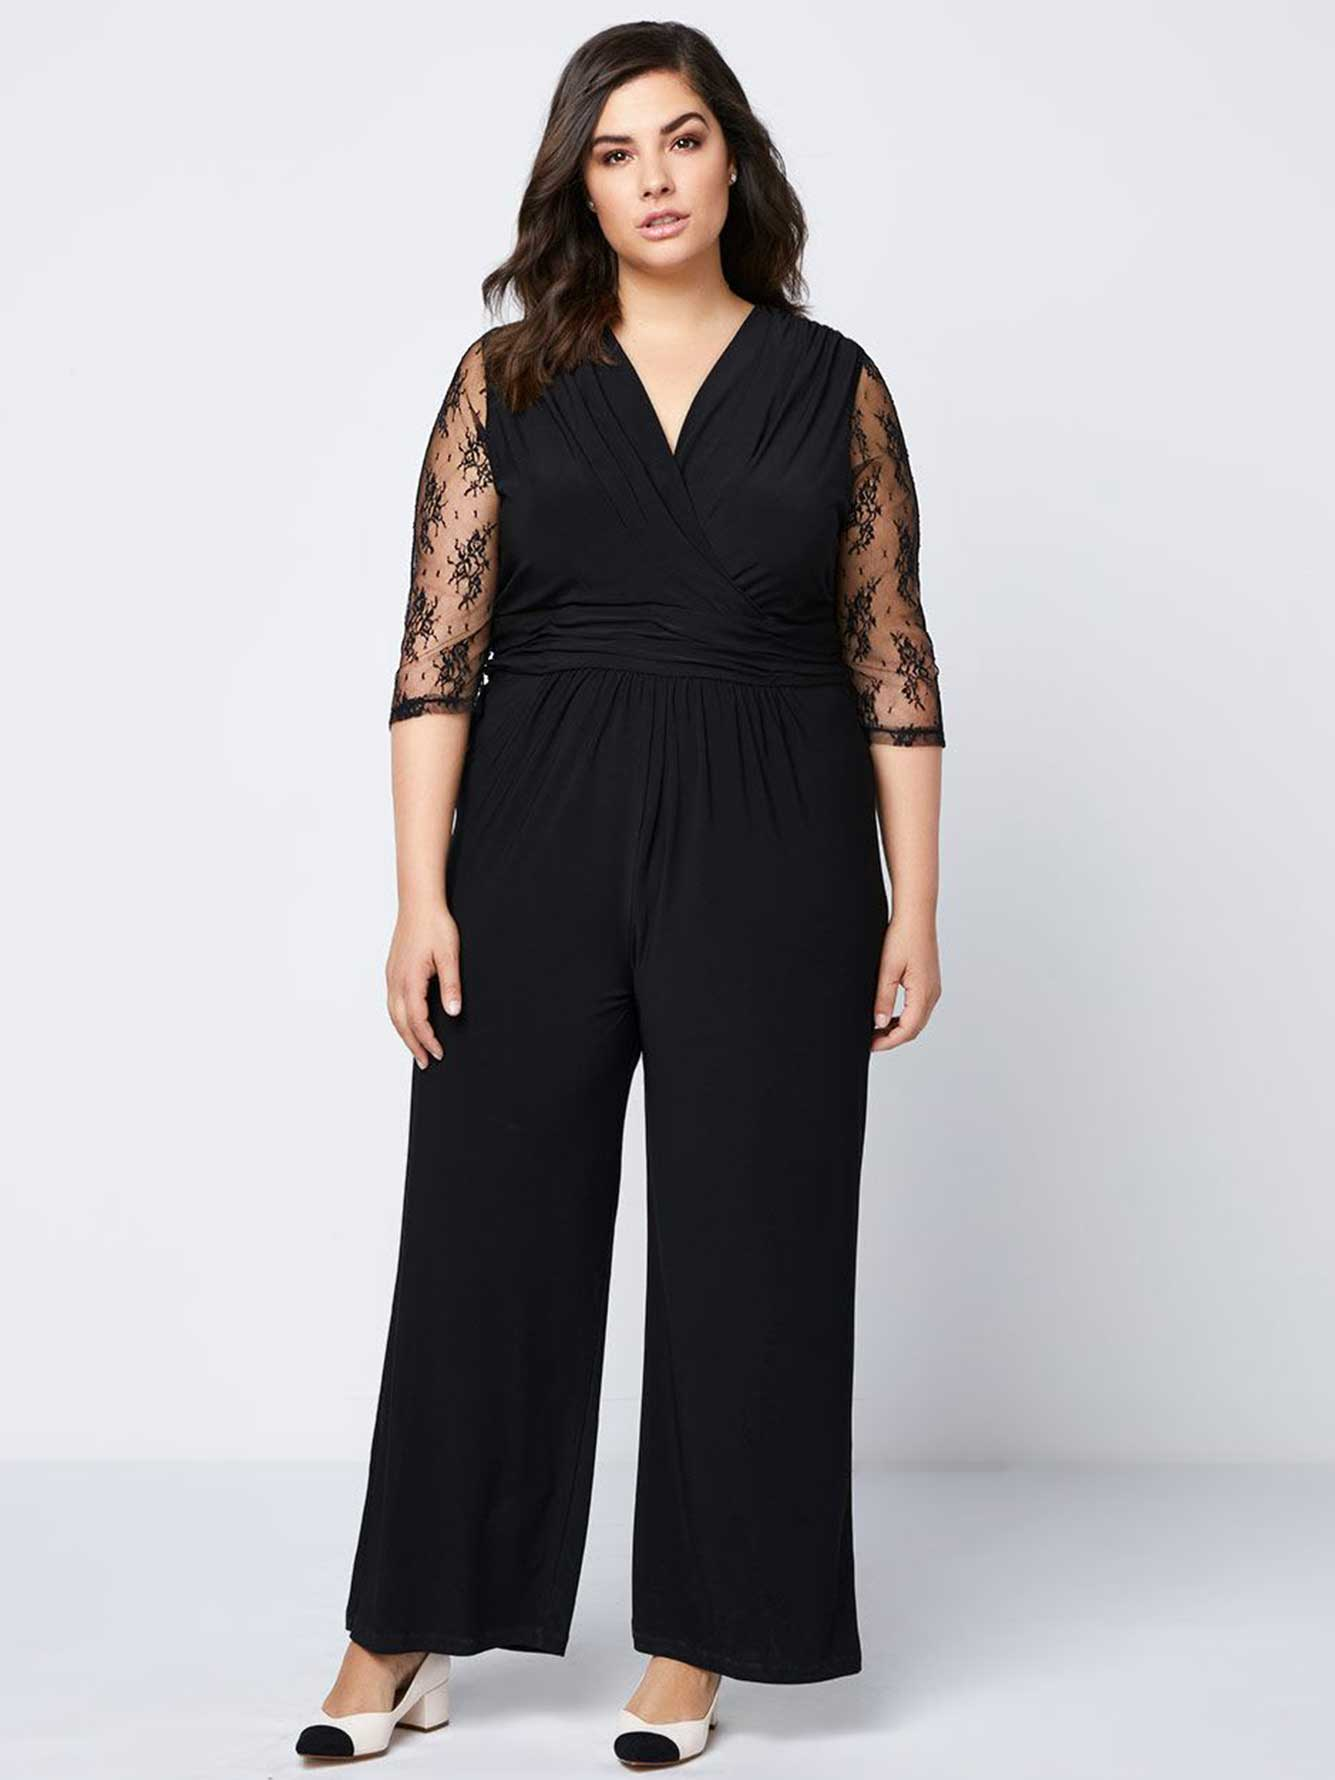 74282f8c239 ONLINE ONLY - Jumpsuit with Lace Sleeves - In Every Story ...